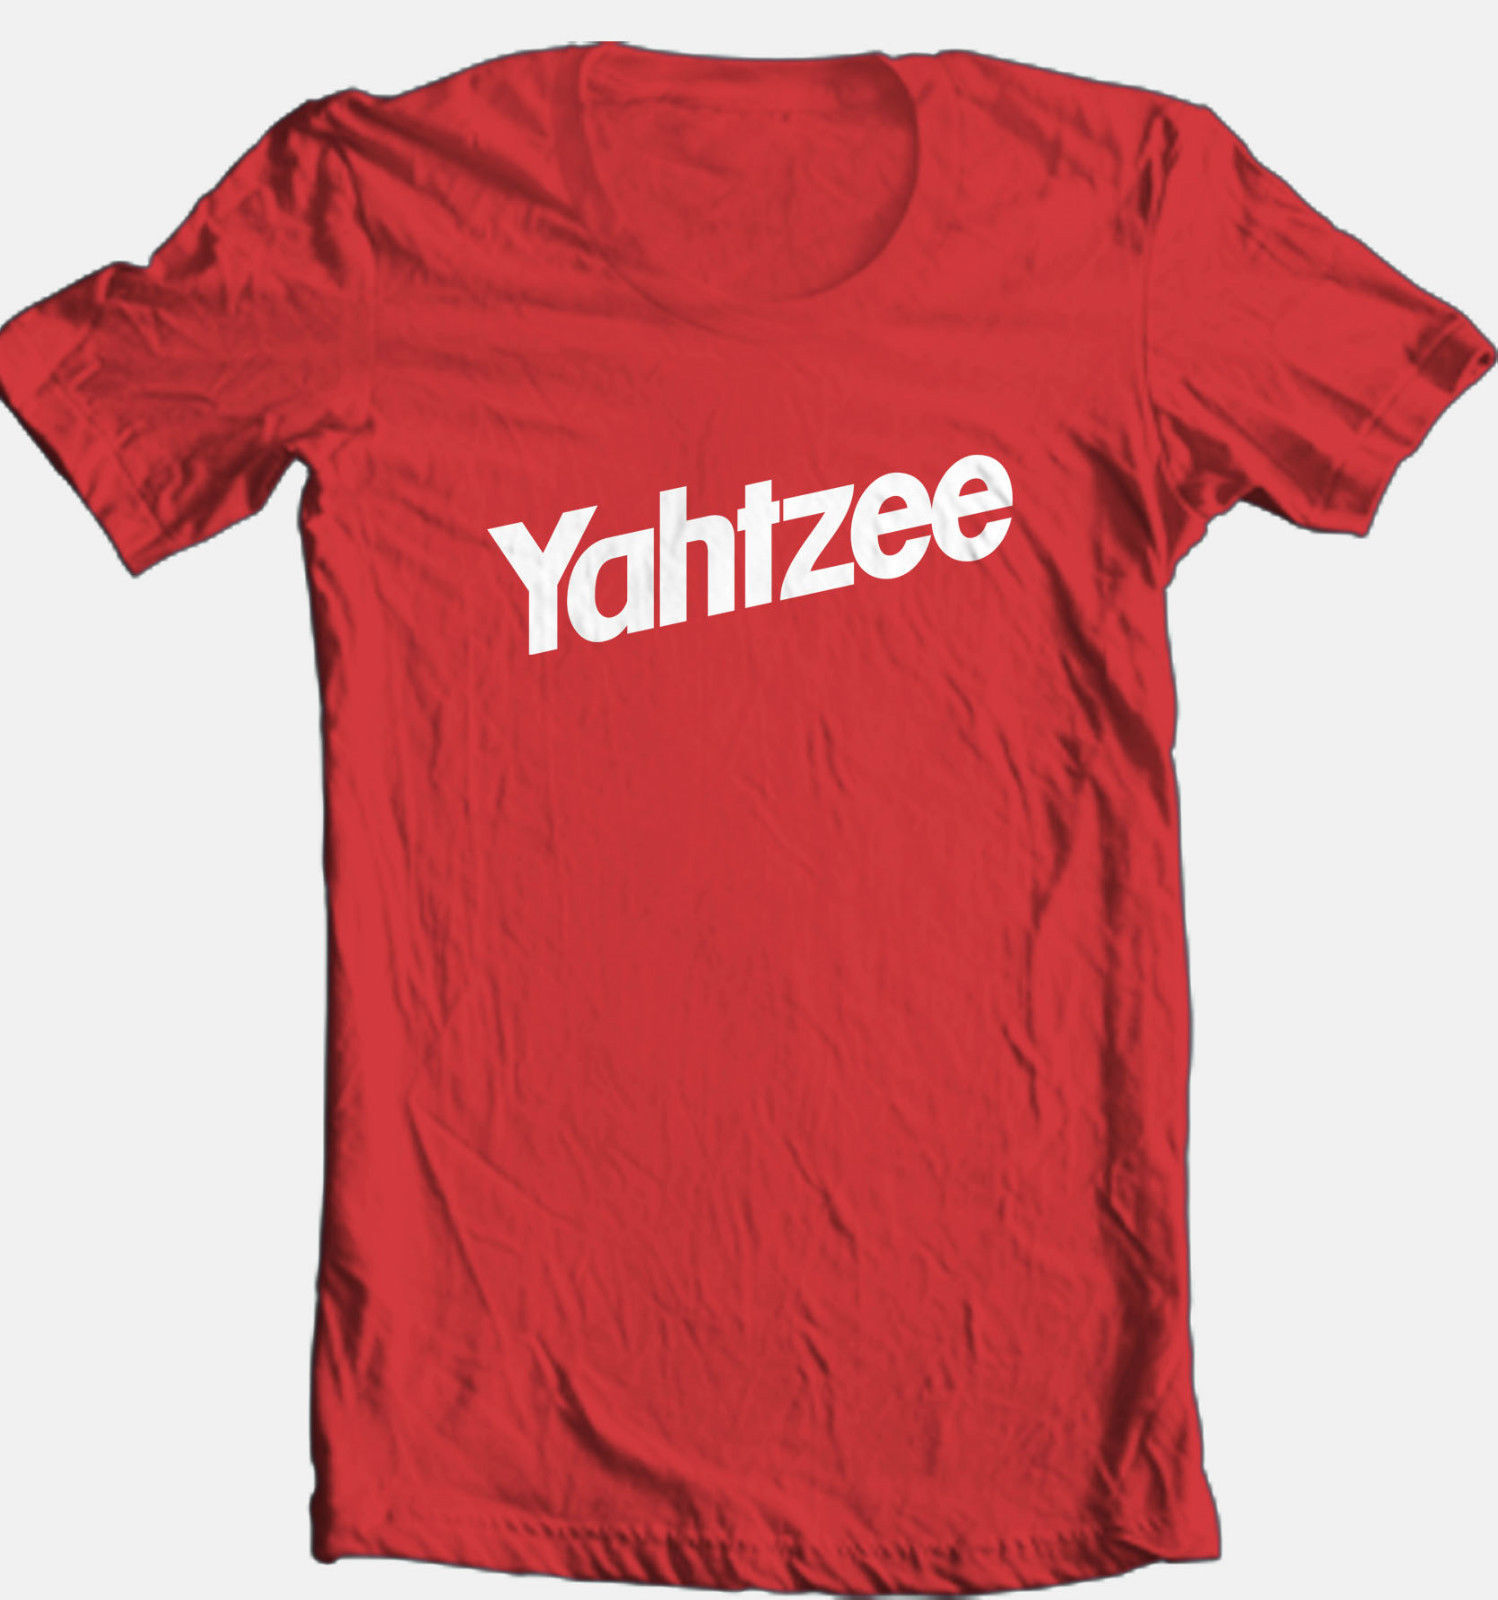 Yahtzee T-shirt cool retro funny vintage 70's 80's board game cotton graphic tee